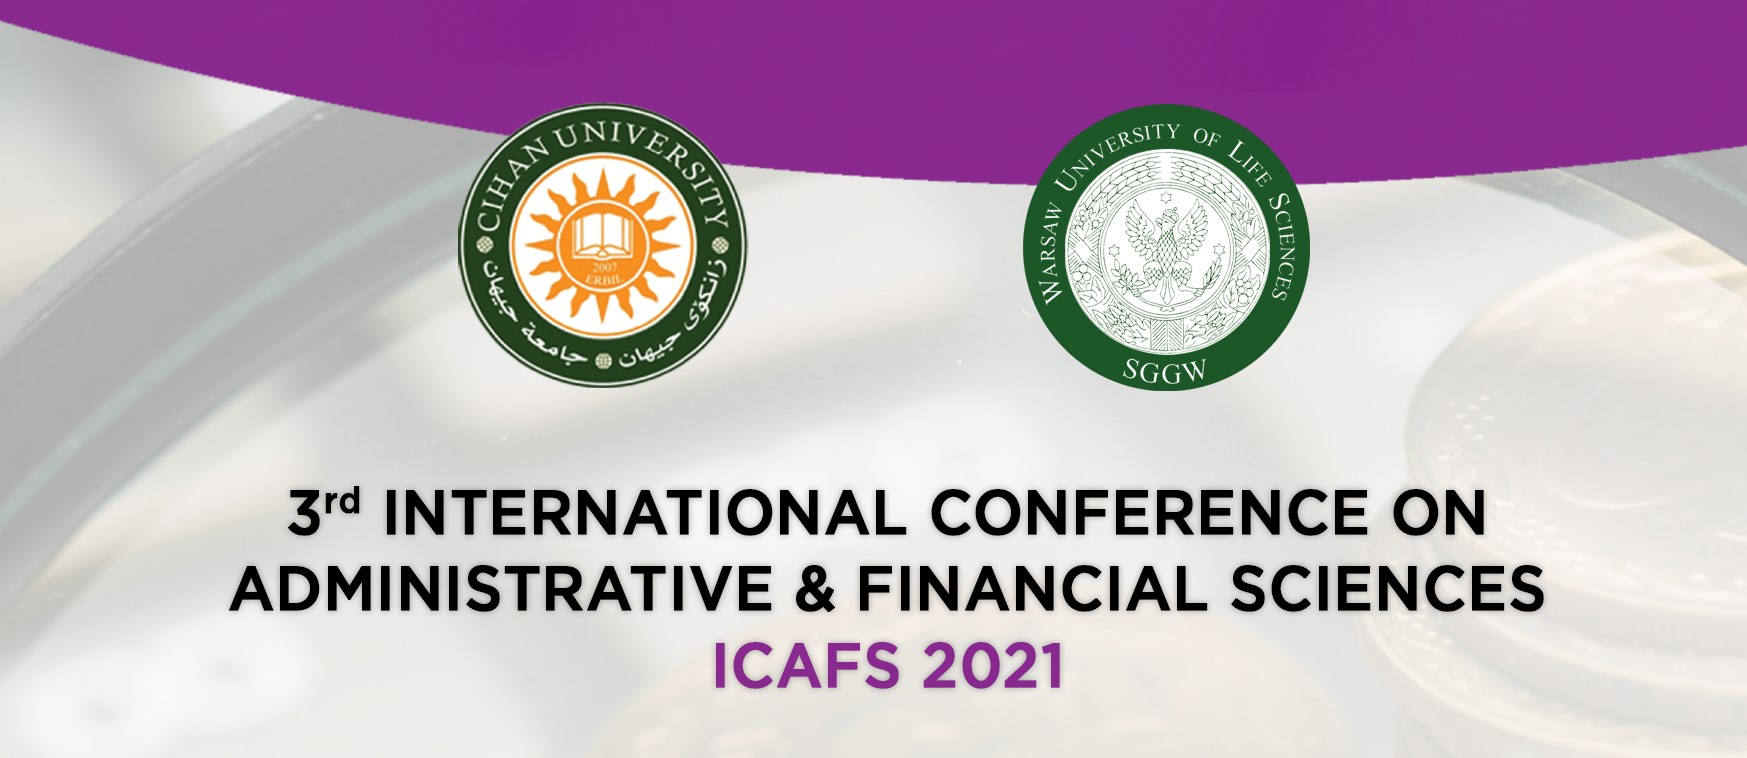 Cihan University-Erbil will hold the third international scientific conference for administrative and financial sciences